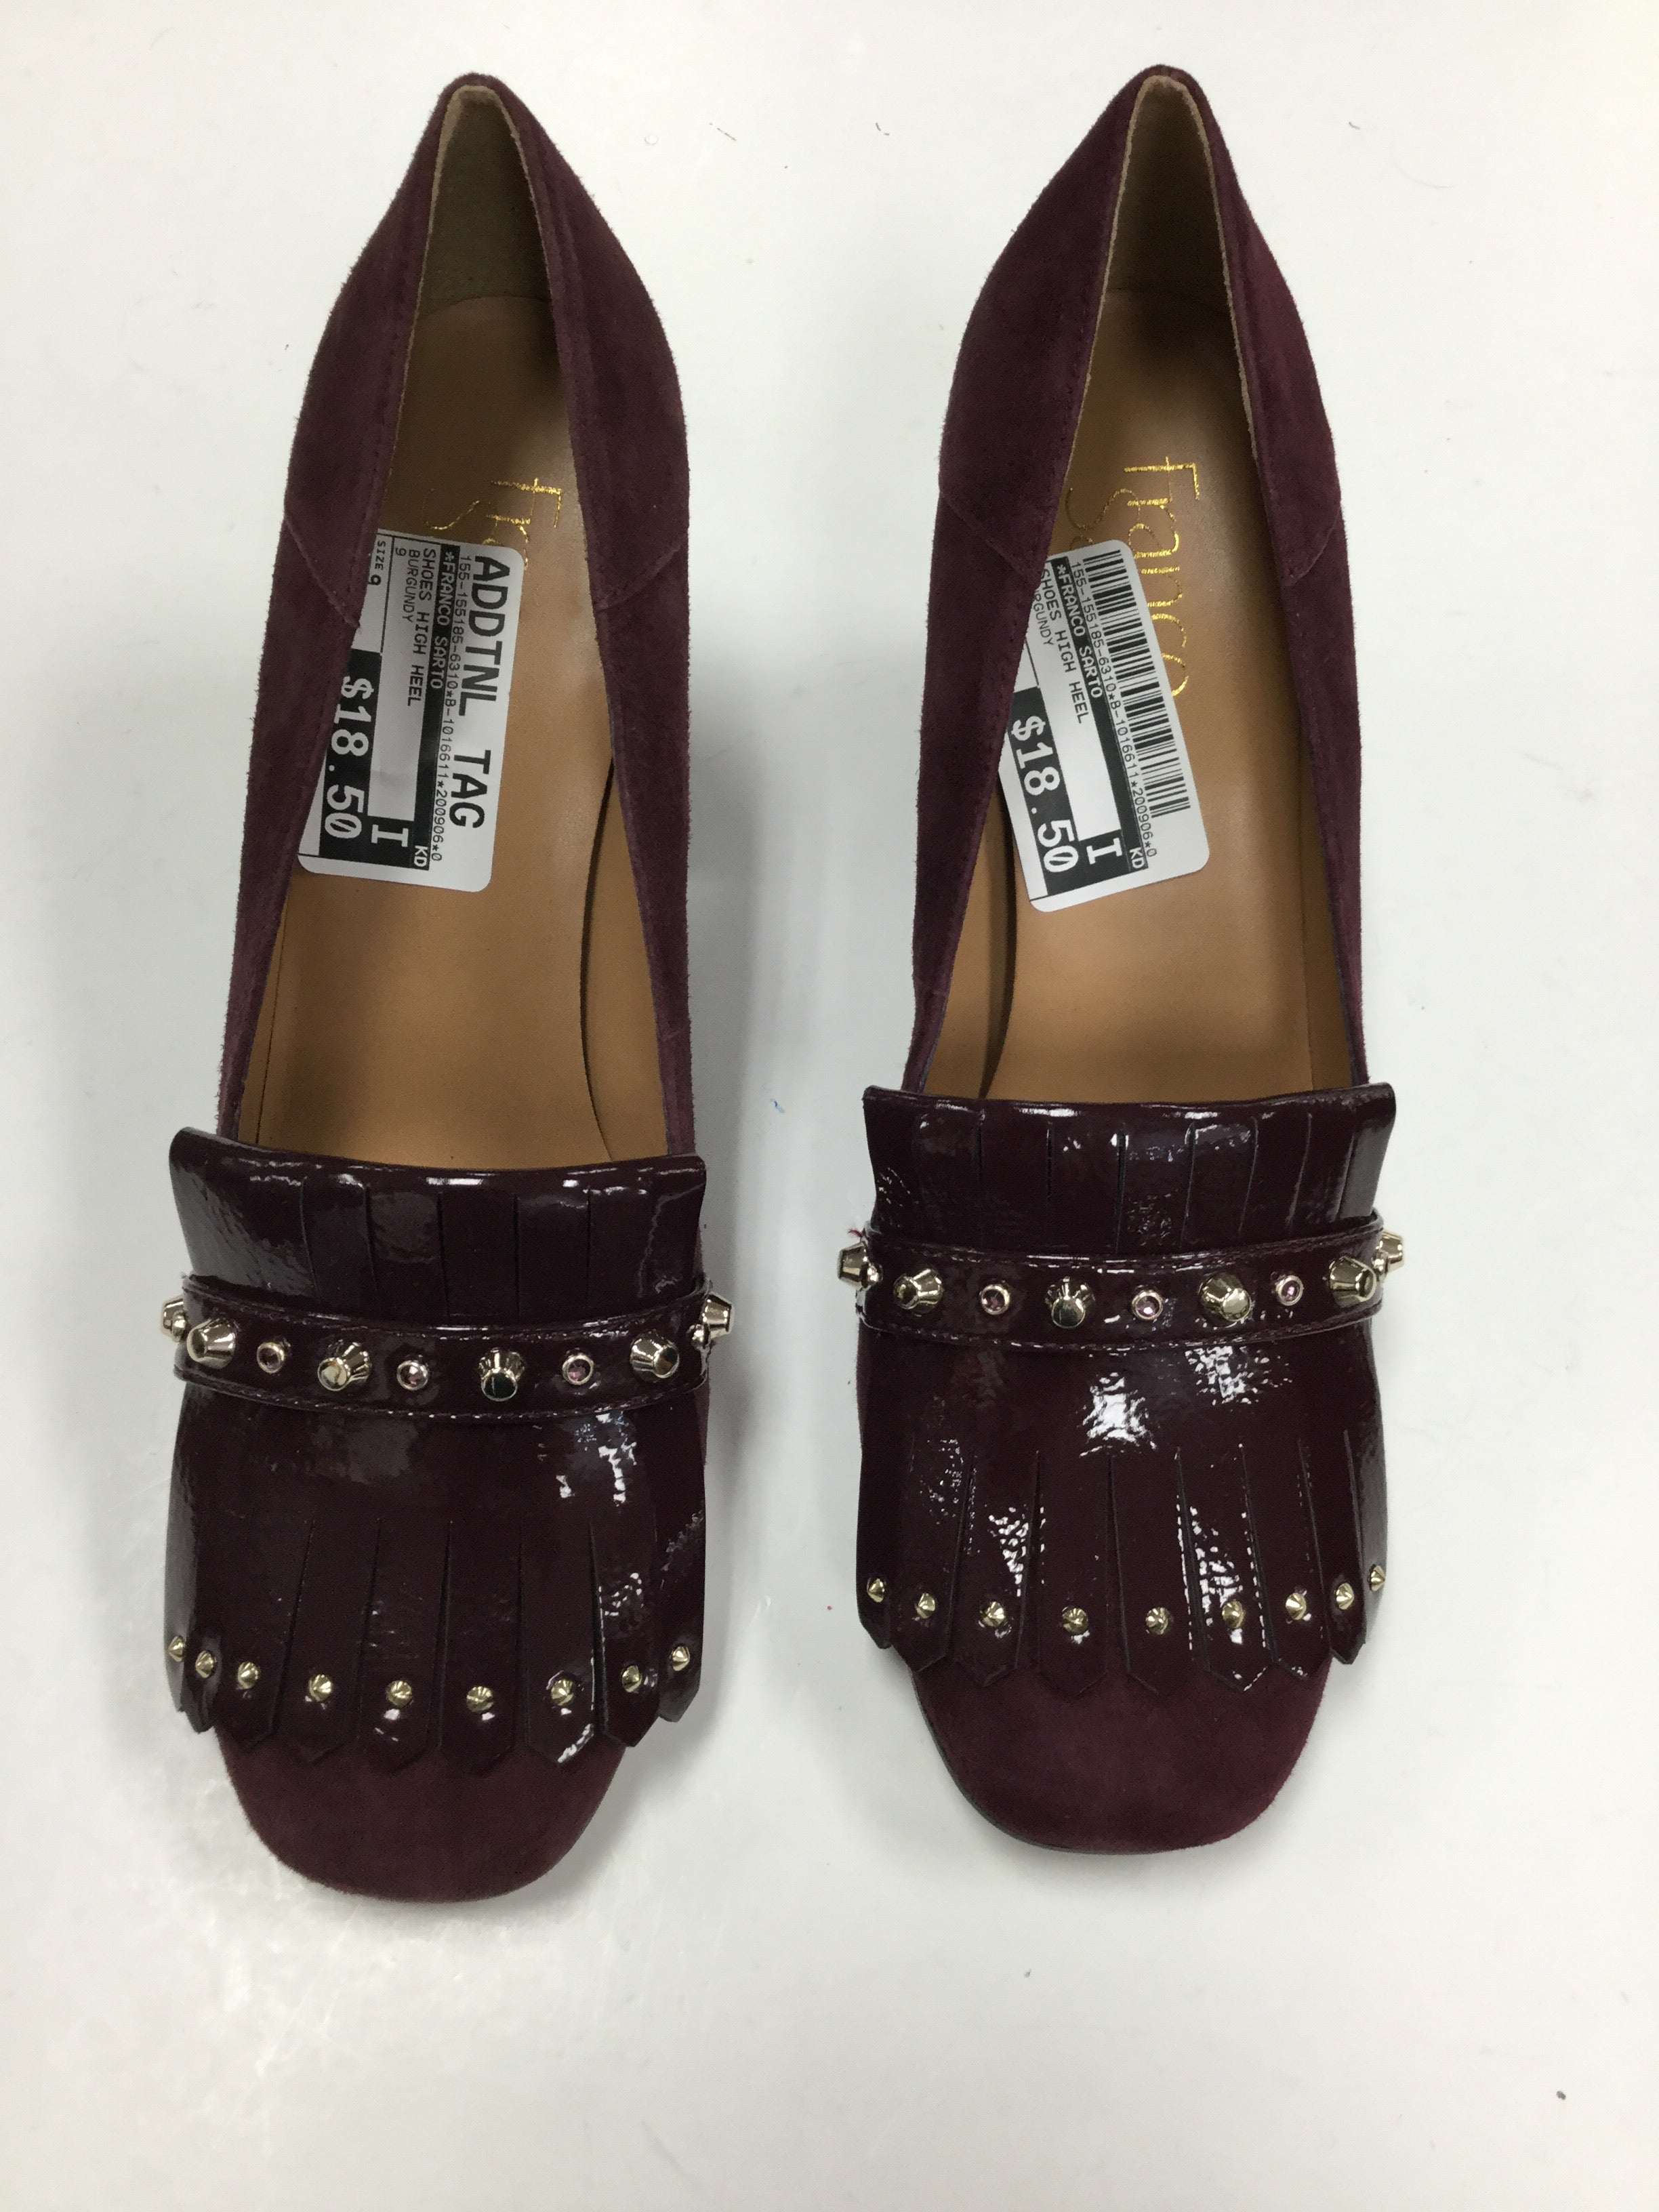 Primary Photo - BRAND: FRANCO SARTO <BR>STYLE: SHOES HIGH HEEL <BR>COLOR: BURGUNDY <BR>SIZE: 9 <BR>SKU: 155-155185-6310